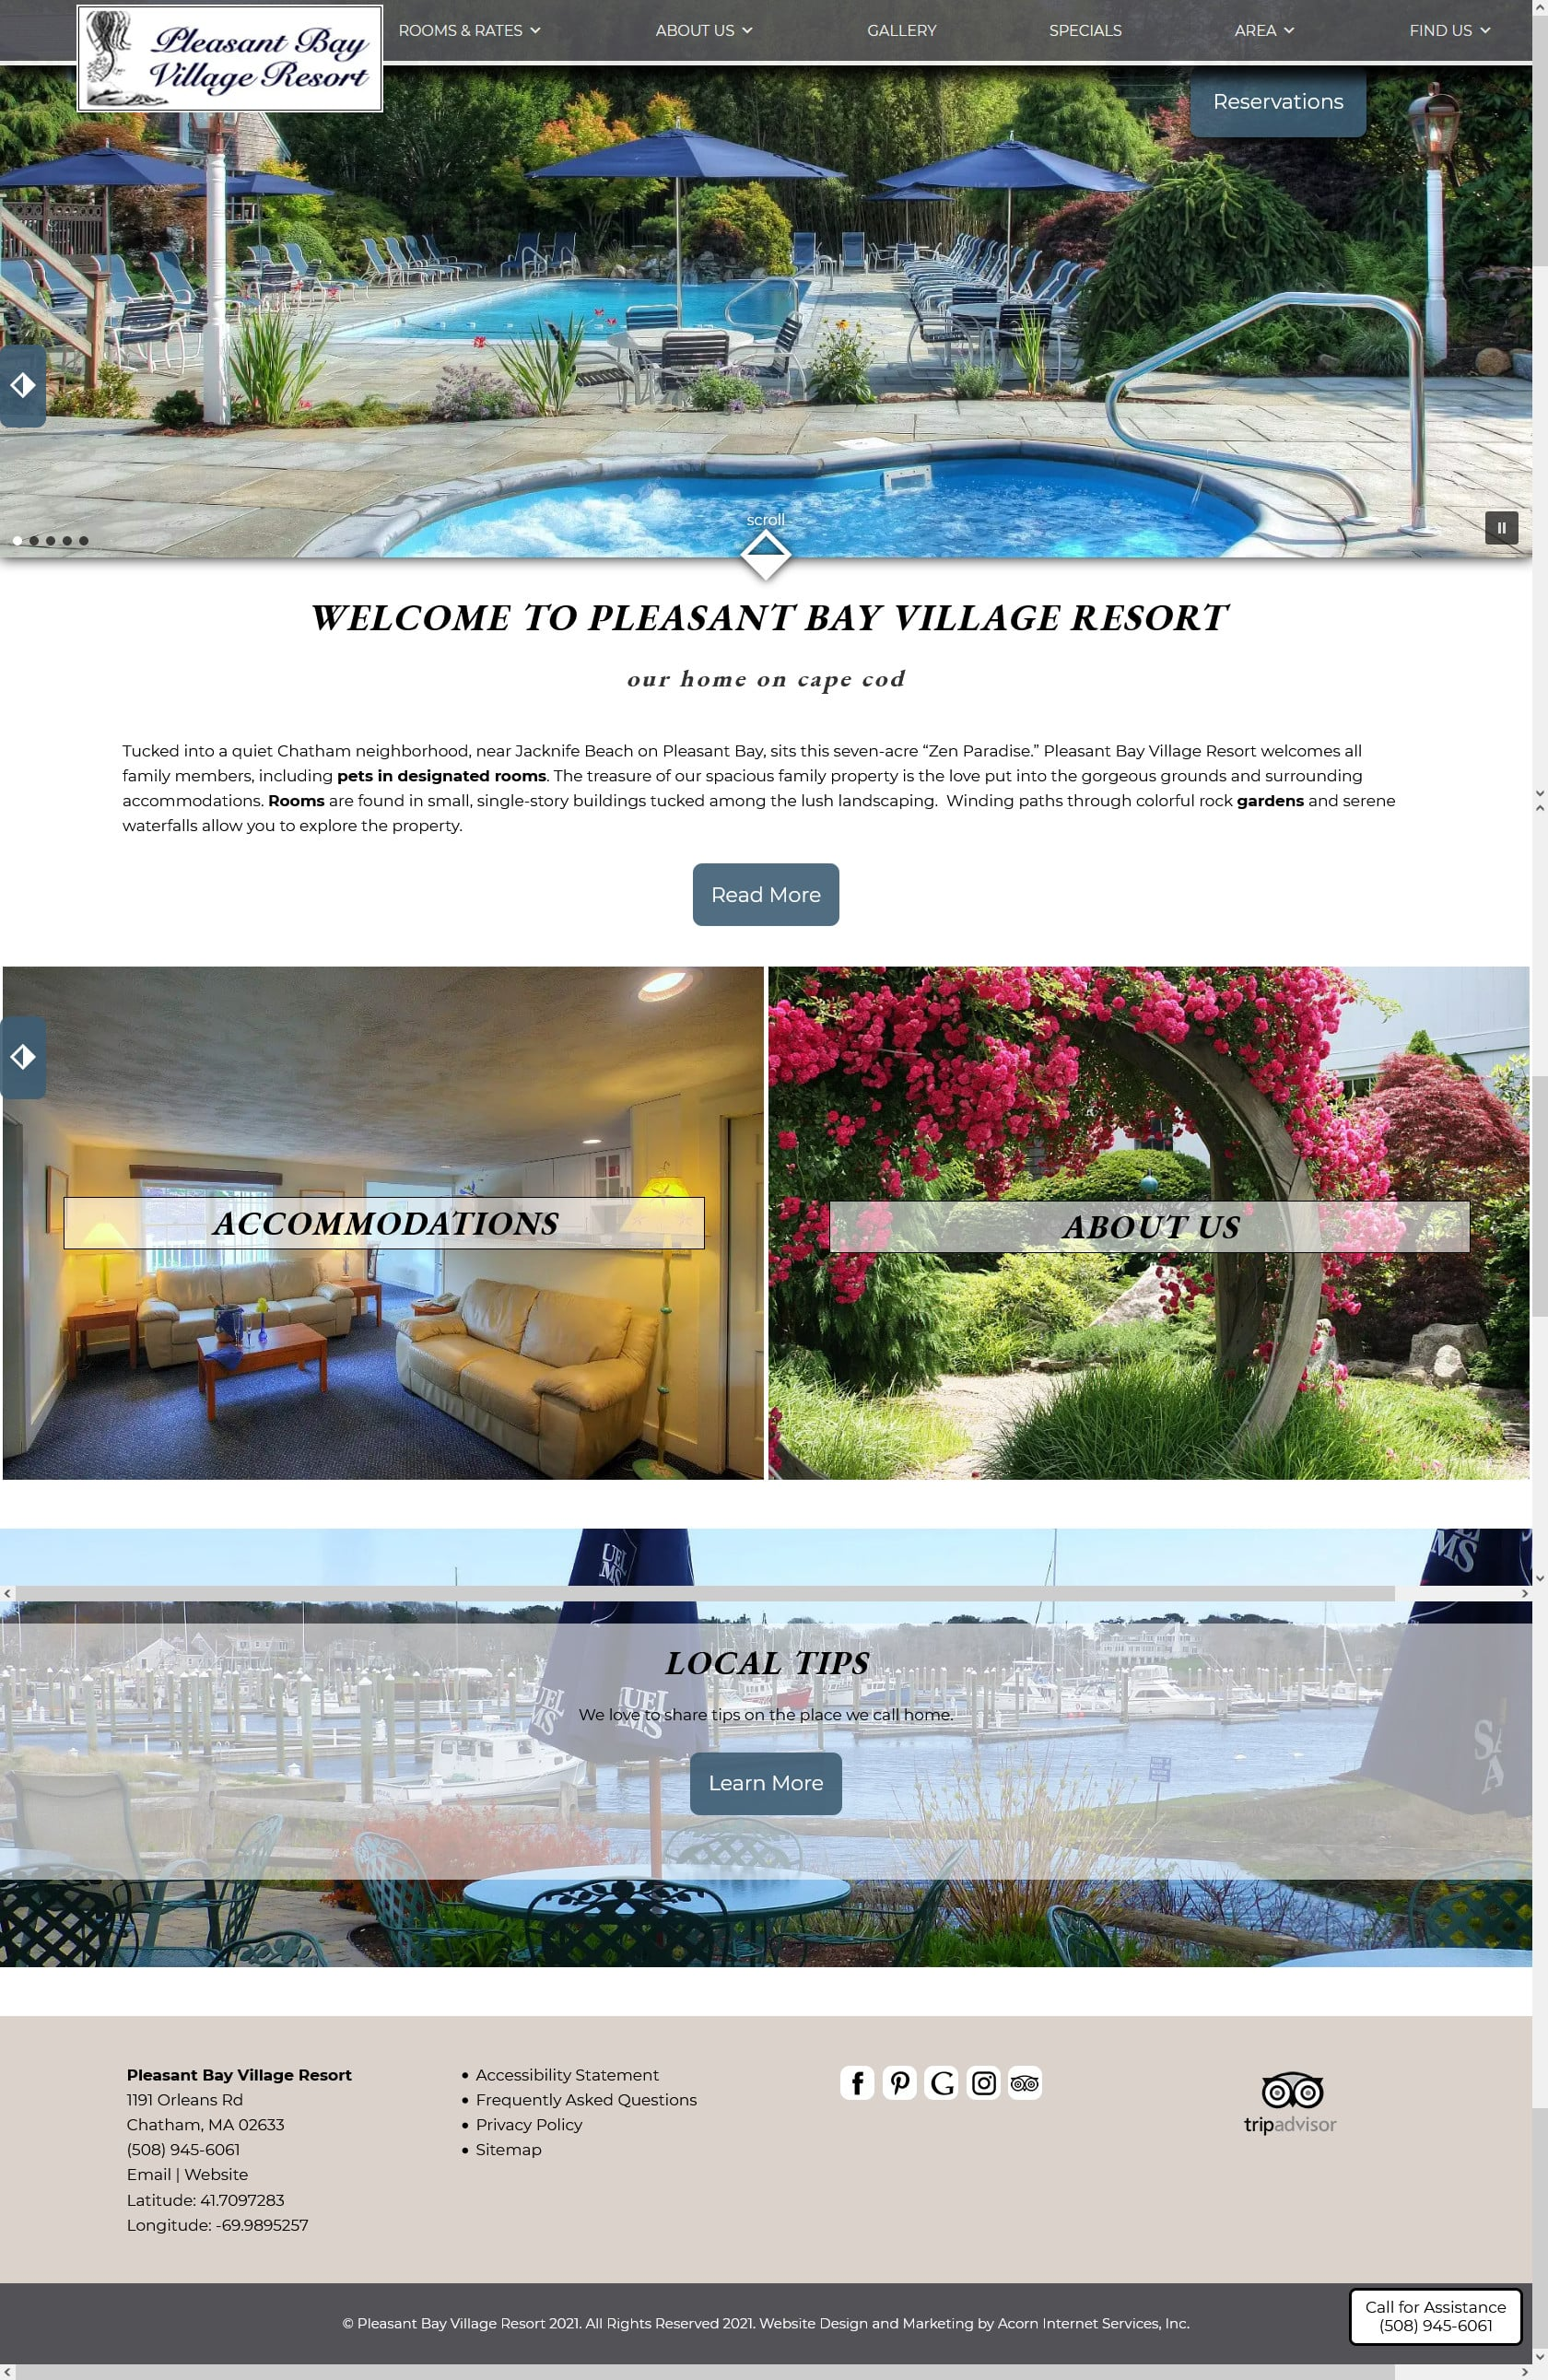 Main home page of Pleasant Bay Village Resort in MA